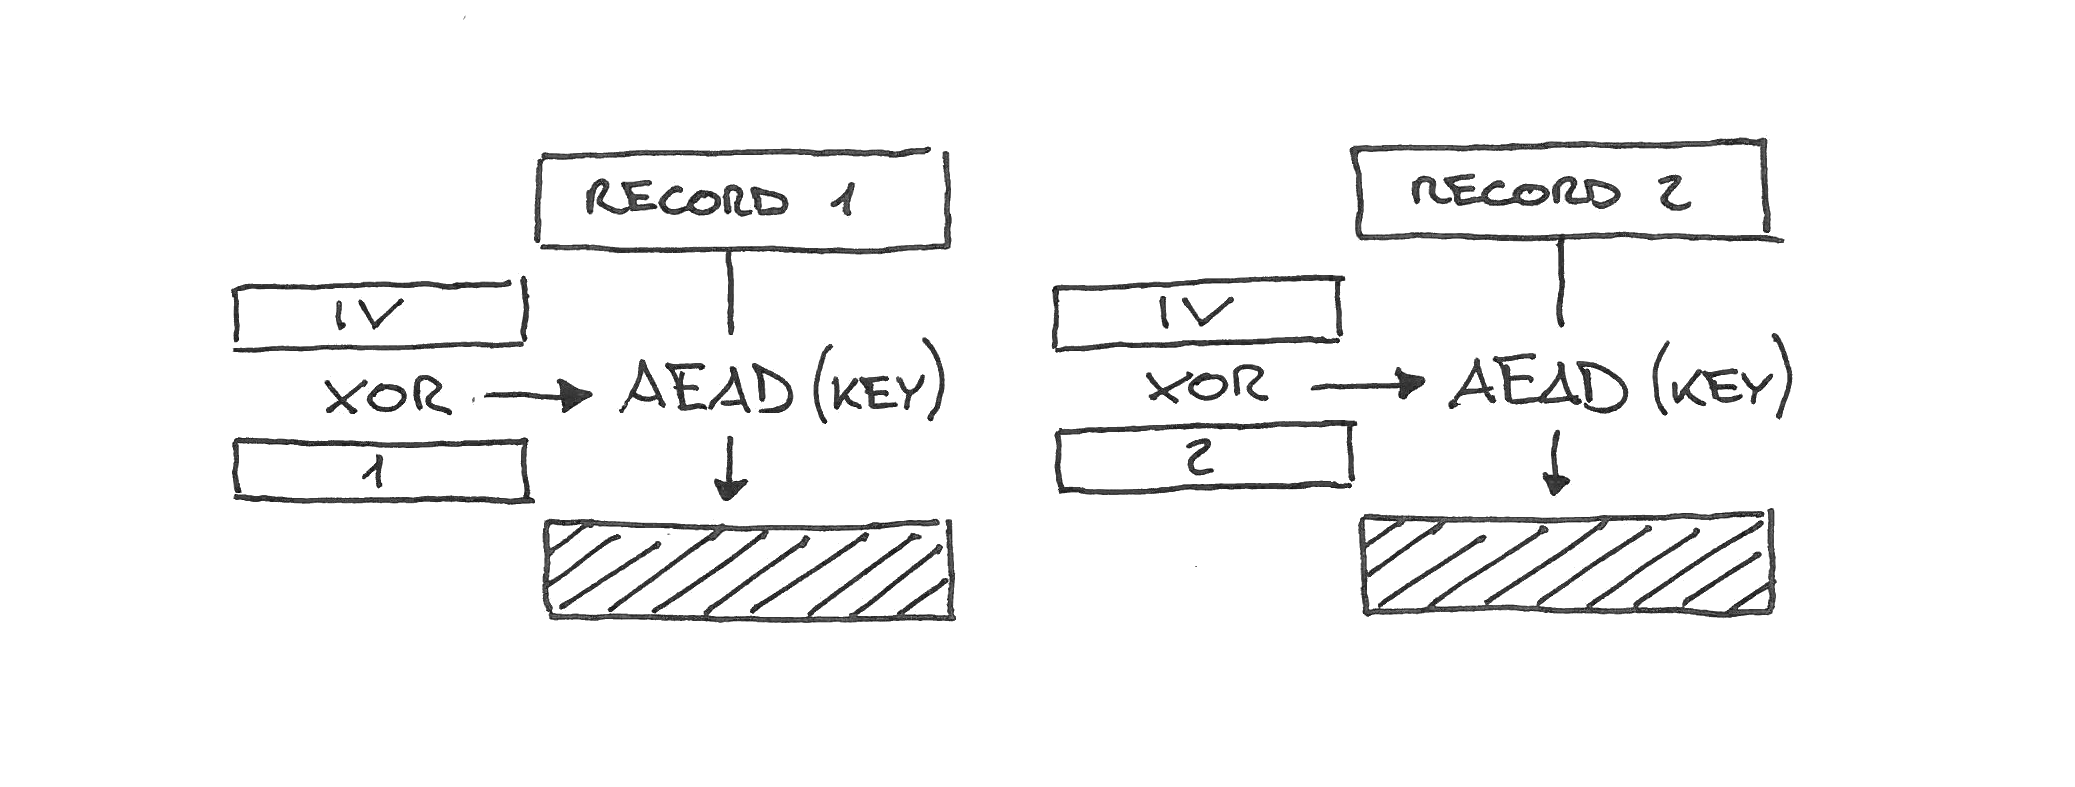 Tls Nonce Nse Rc4 Wiring Diagram It Uses Instead A Combination Of Fixed Per Connection Iv Derived At The Same